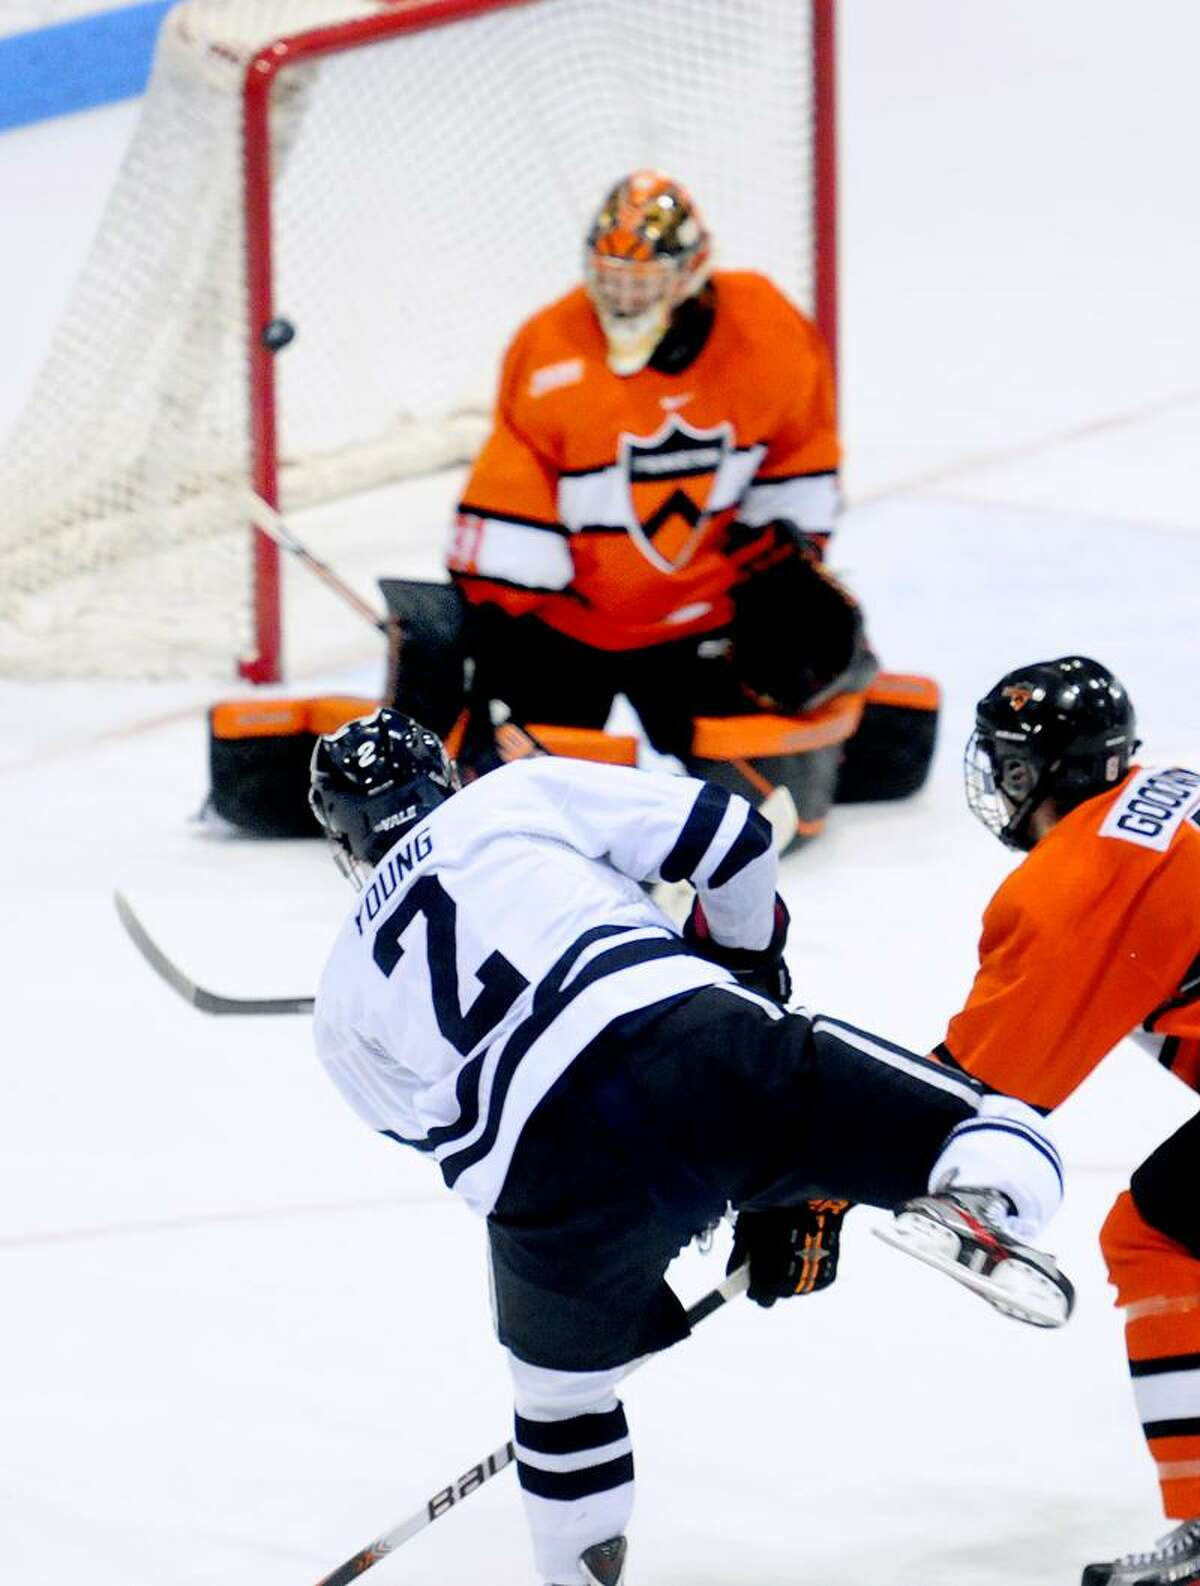 Gus Young (bottom left) of Yale hits a shot into the post against Princeton in the first period on 3/3/2012.Photo by Arnold Gold/New Haven Register AG0441E